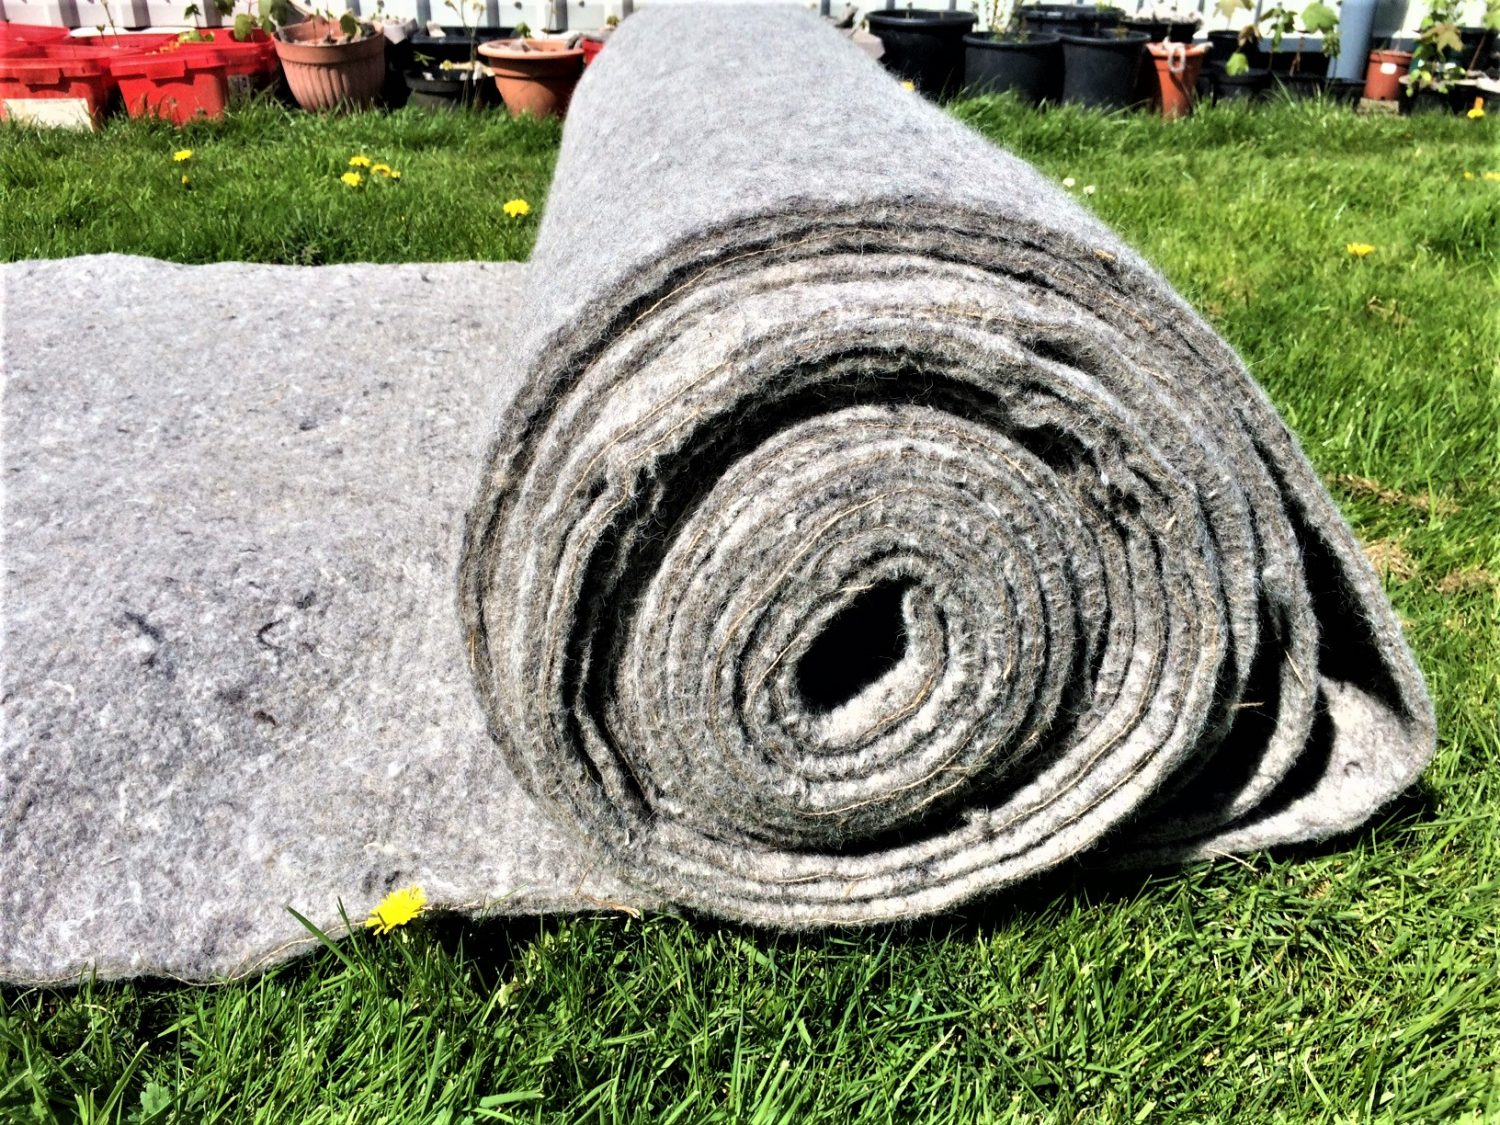 A large roll of wool garden mulch felt with the image focusing on the side view of the roll. About a metre of felt is unrolled onto bright sunlit grass